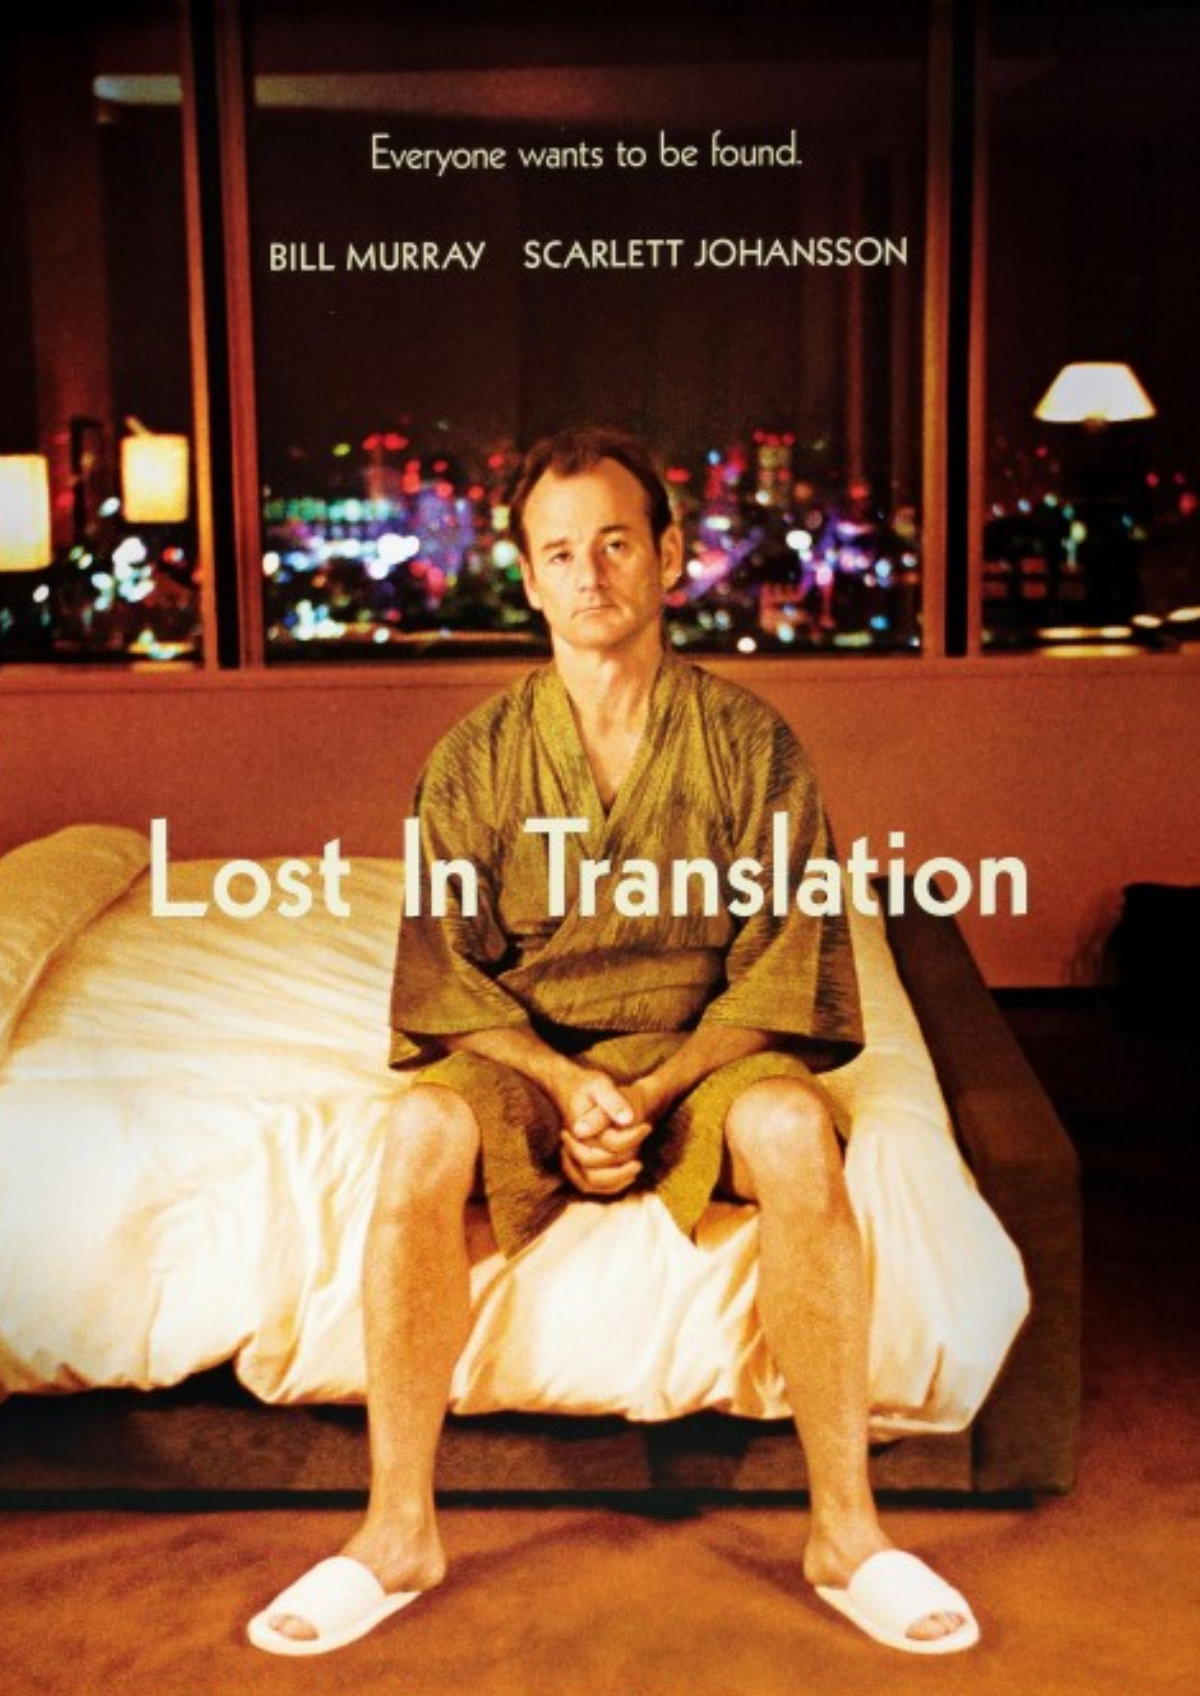 'Lost In Translation' movie poster